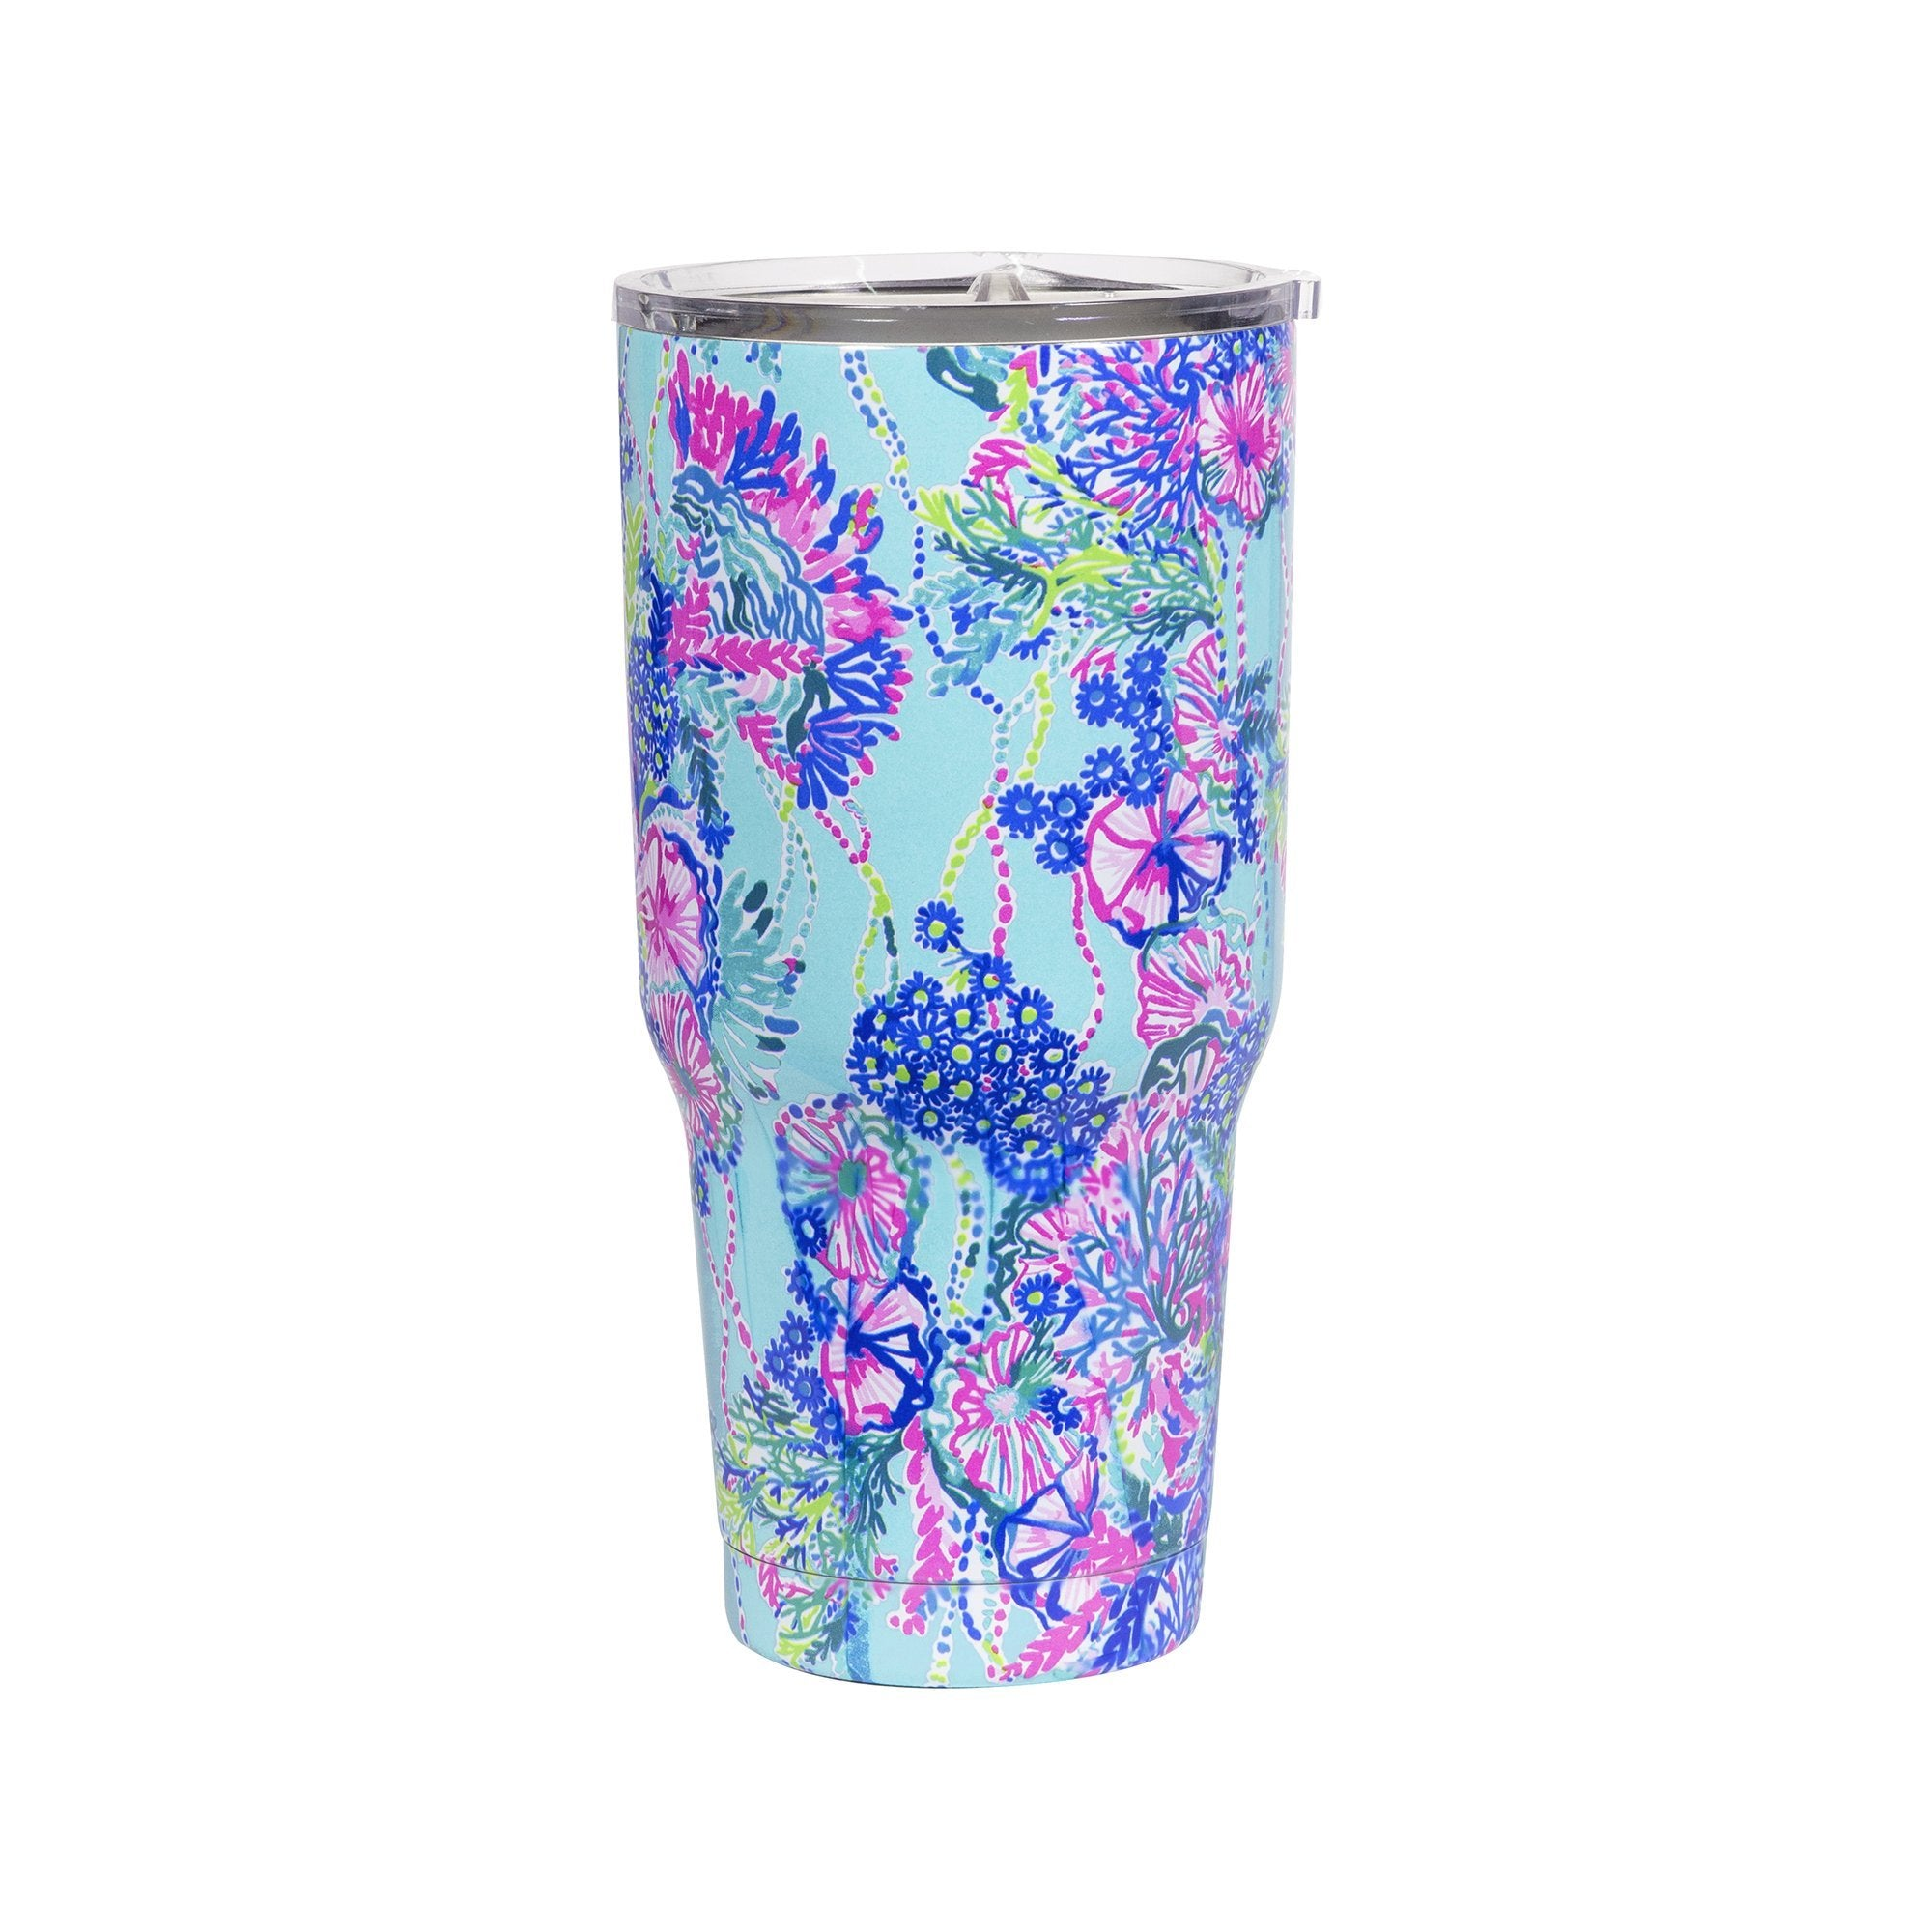 lilly pulitzer stainless steel insulated tumbler, beach you to it (30 oz)